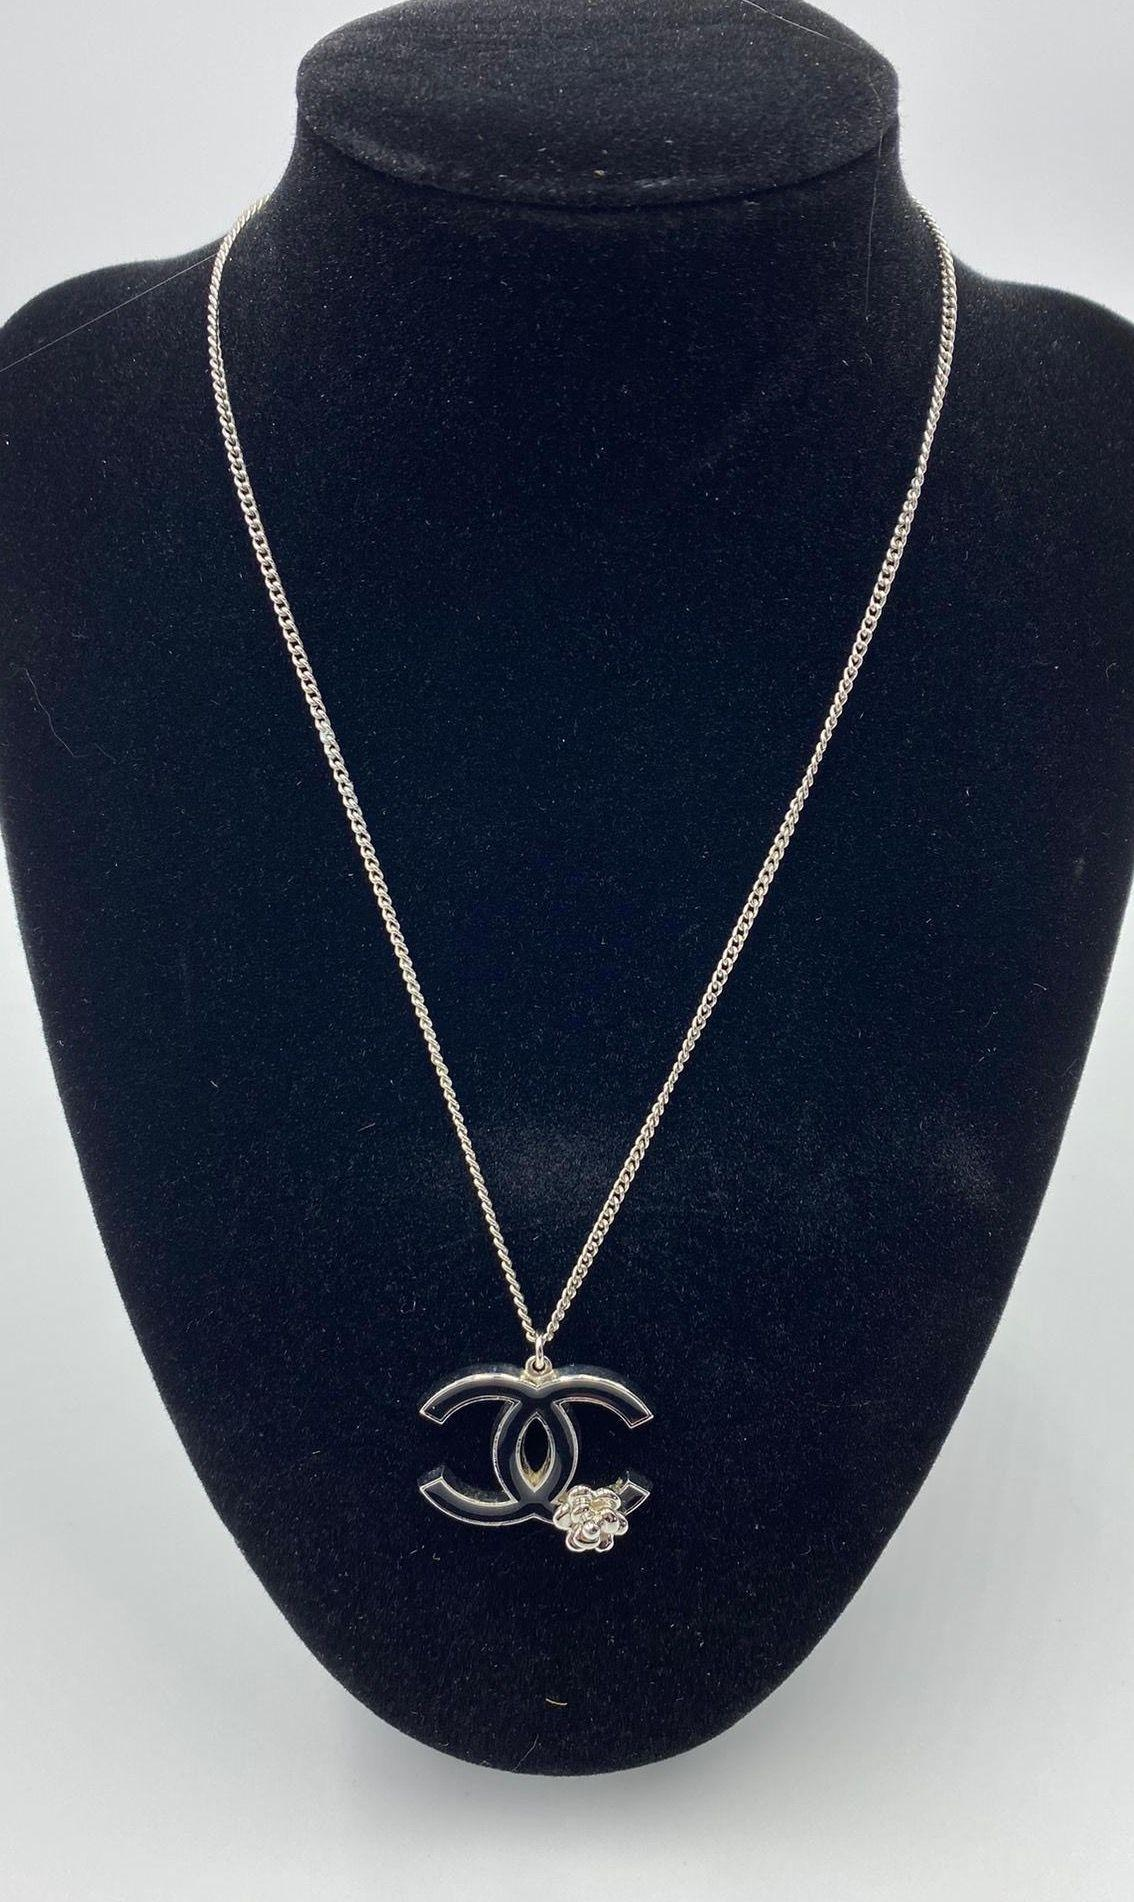 CHANEL - Necklace